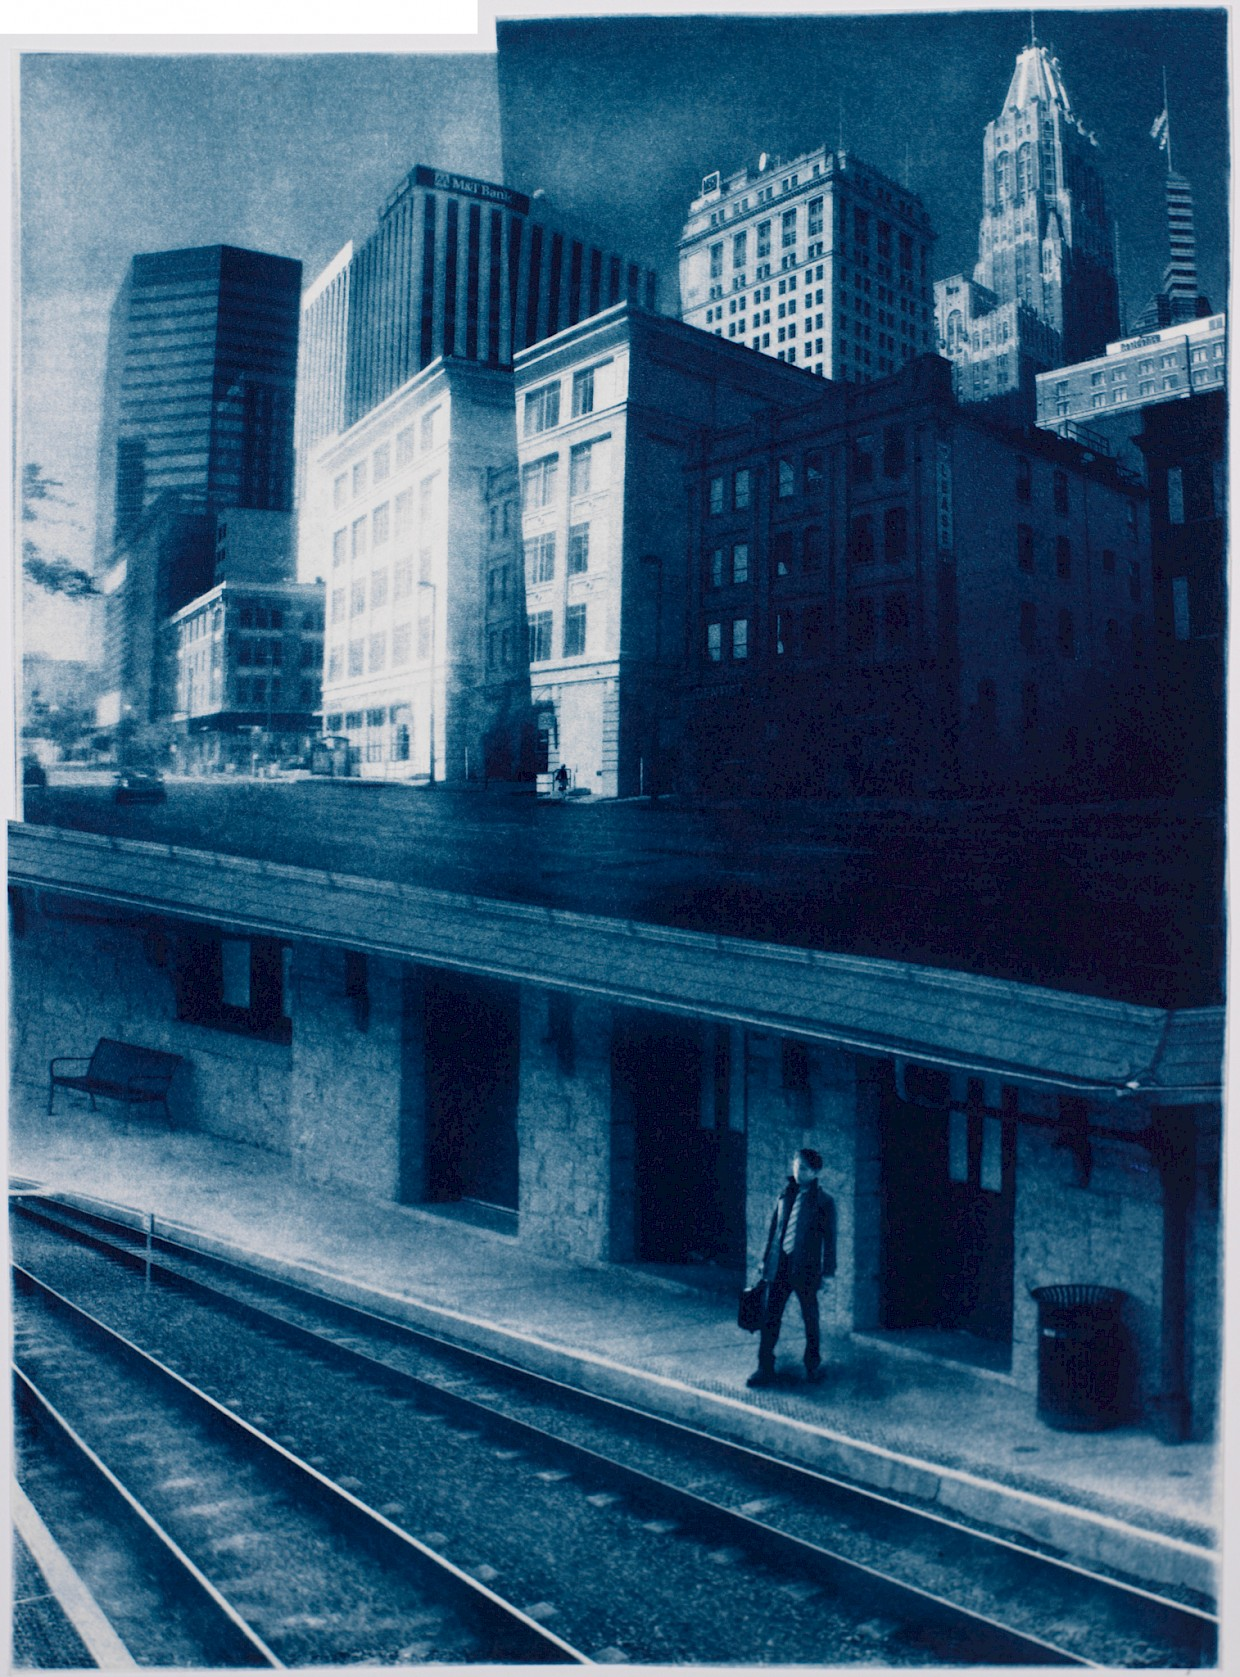 a man commuting at end of business day with immense city in background